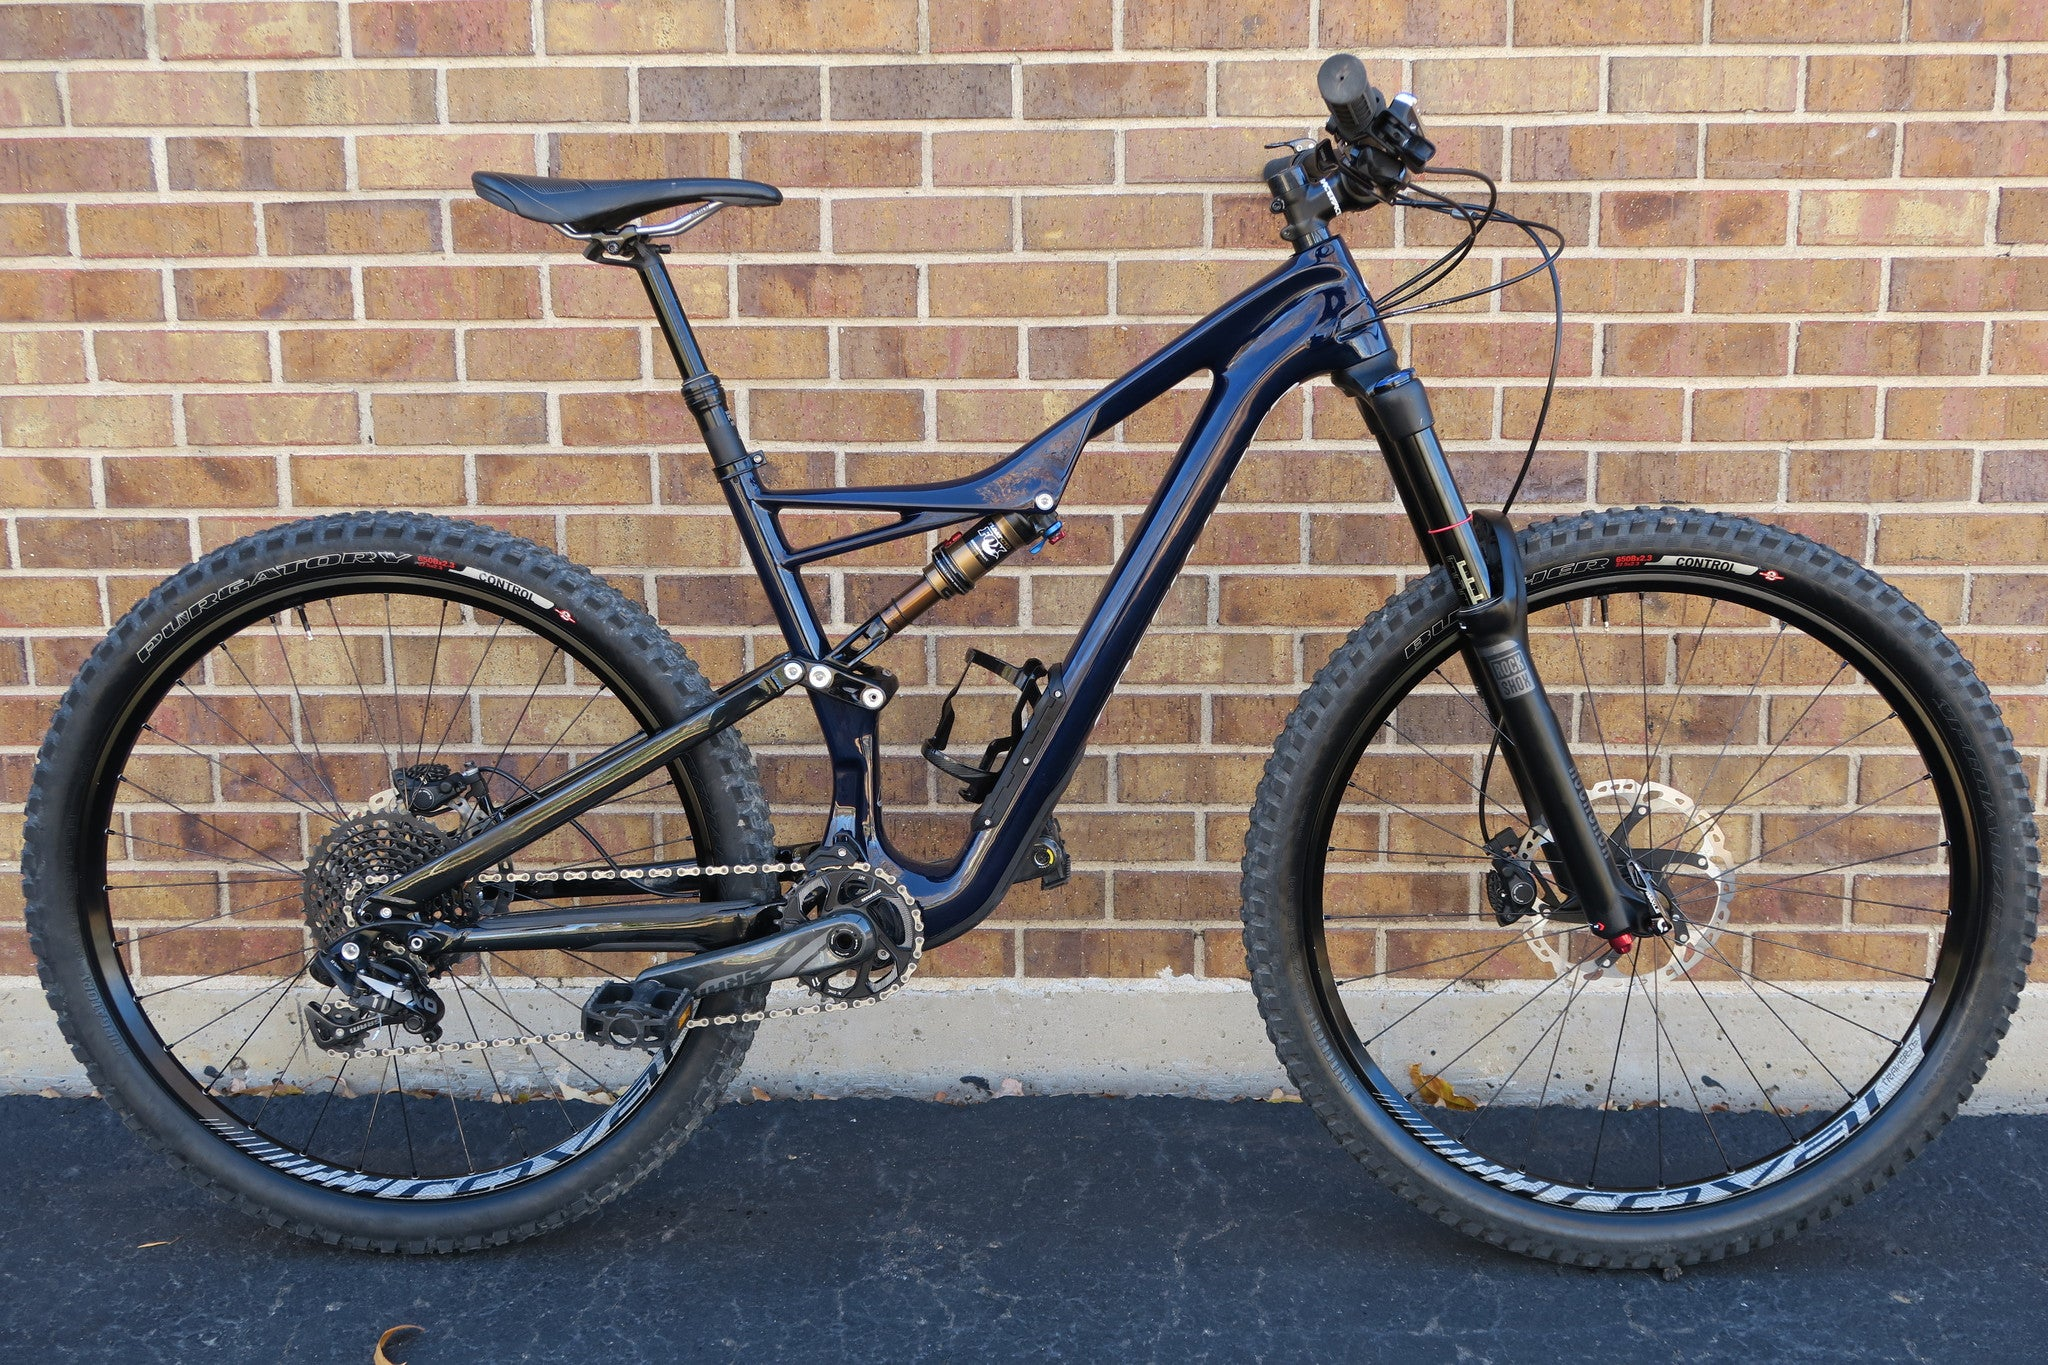 2016 SPECIALIZED STUMPJUMPER EXPERT 650B